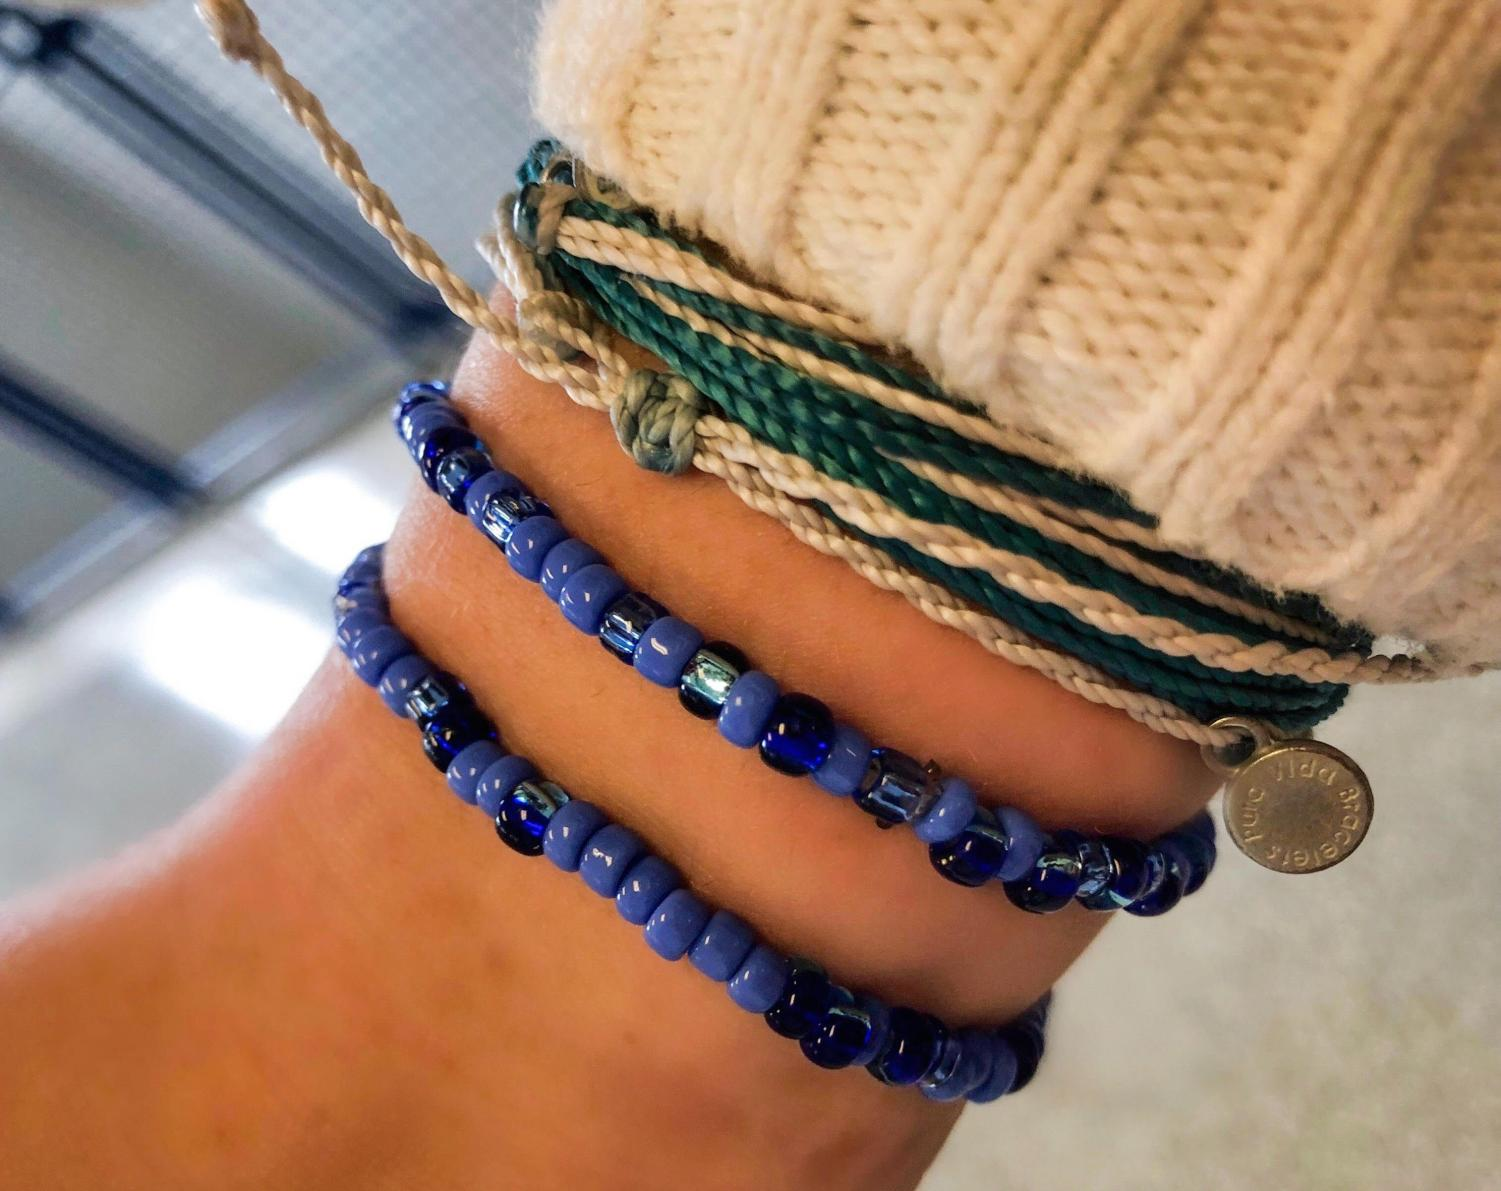 Senior Natan Rosen's dad decided to make bracelets as a mindfulness practice. Since he started making them, he estimates he has made and given out—for free—10,000 beaded bracelets over the last four years.